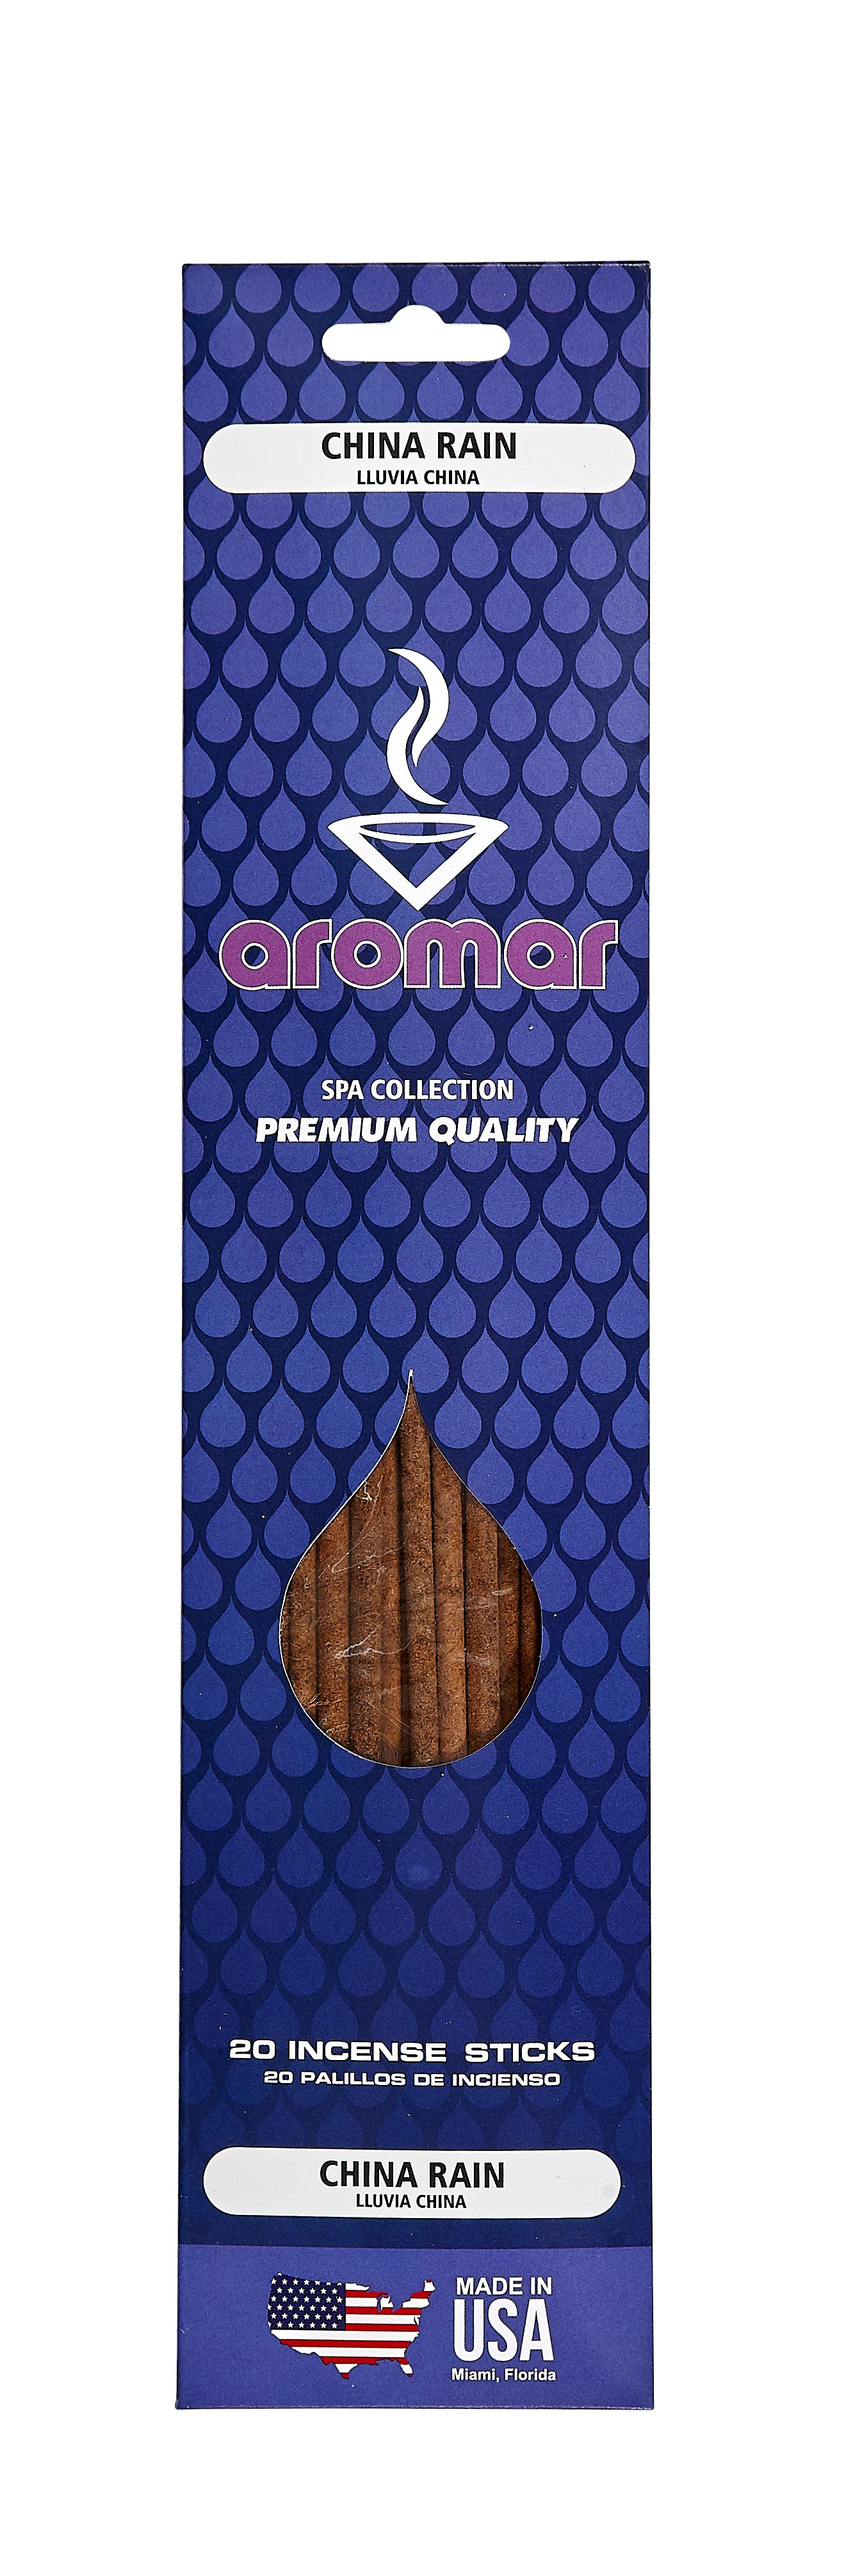 China Rain Premium Hand Dipped Pre-Packed Incense